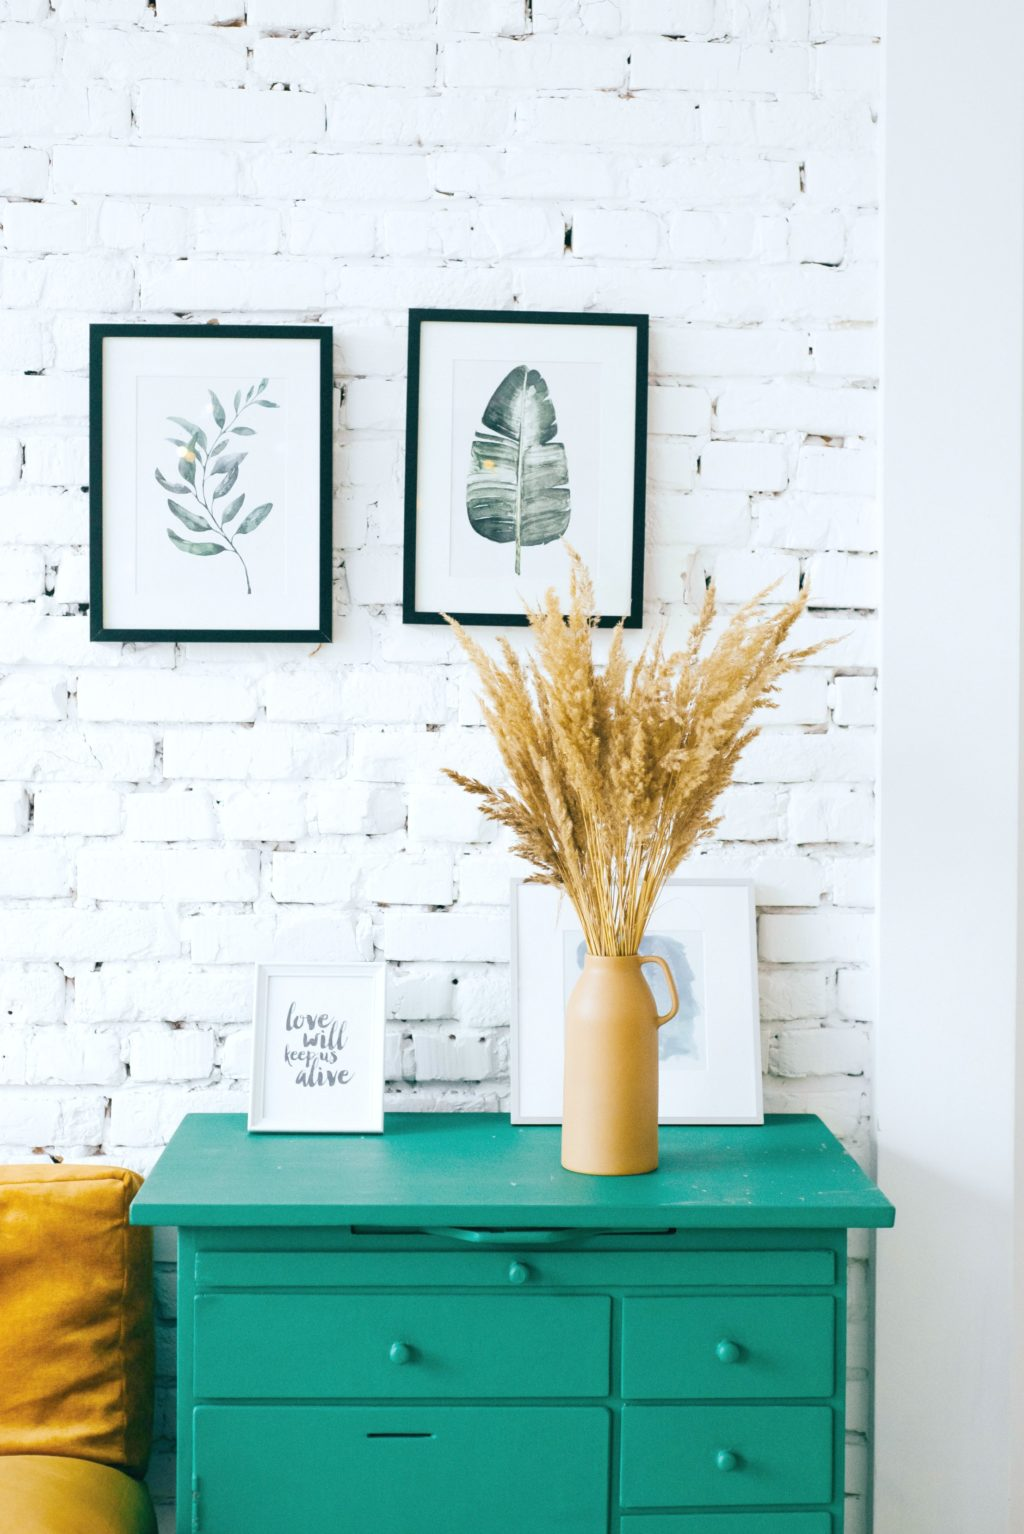 Home Decorating Ideas on a Budget - Whispered Inspirations